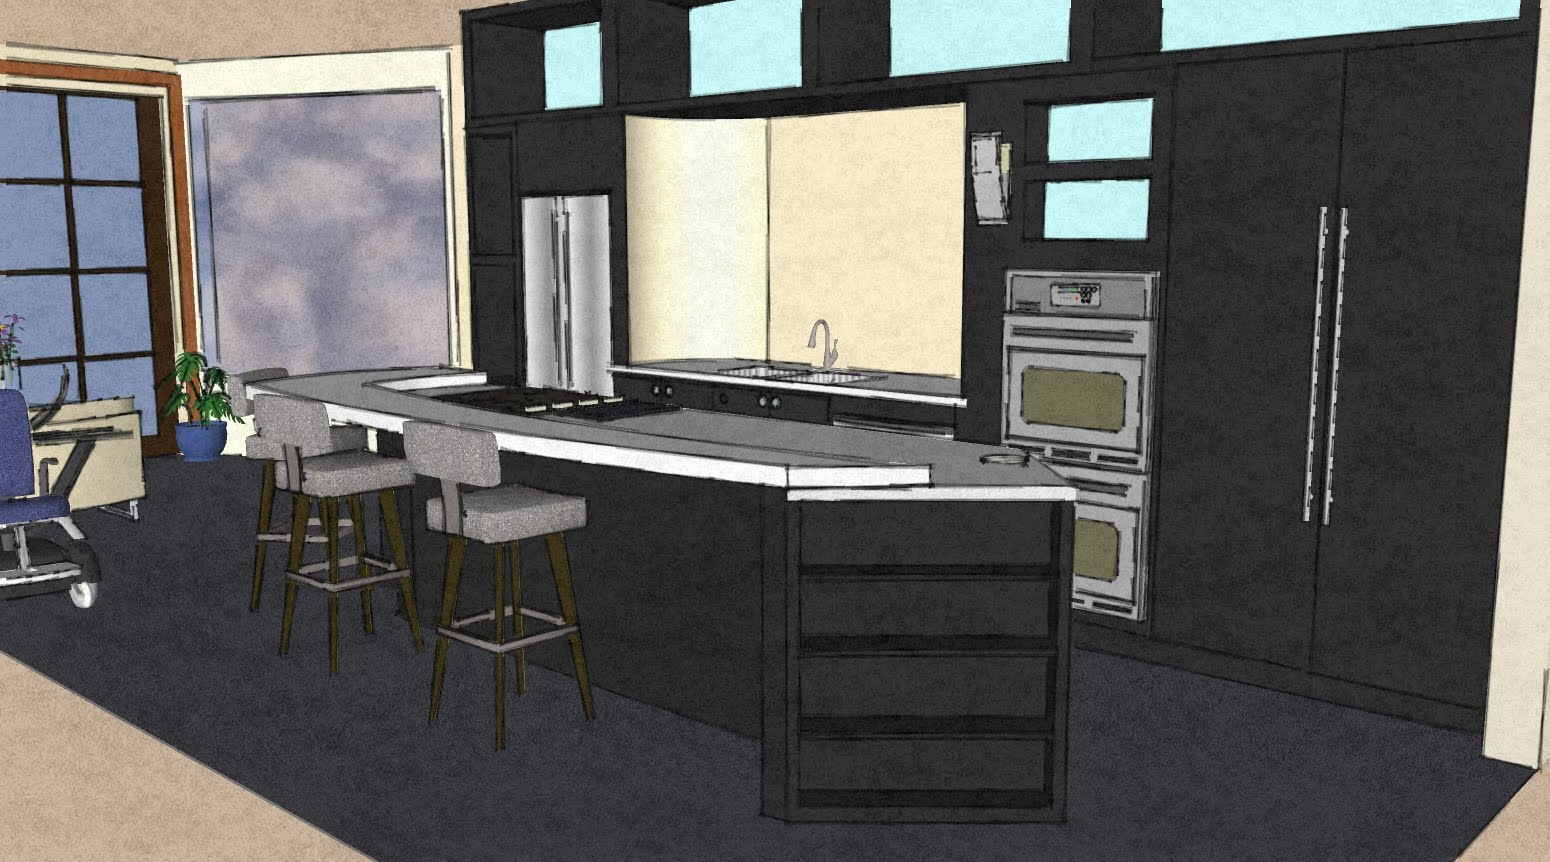 The First Is A View Of The North Wall Of My Residential Kitchen Design Posted In